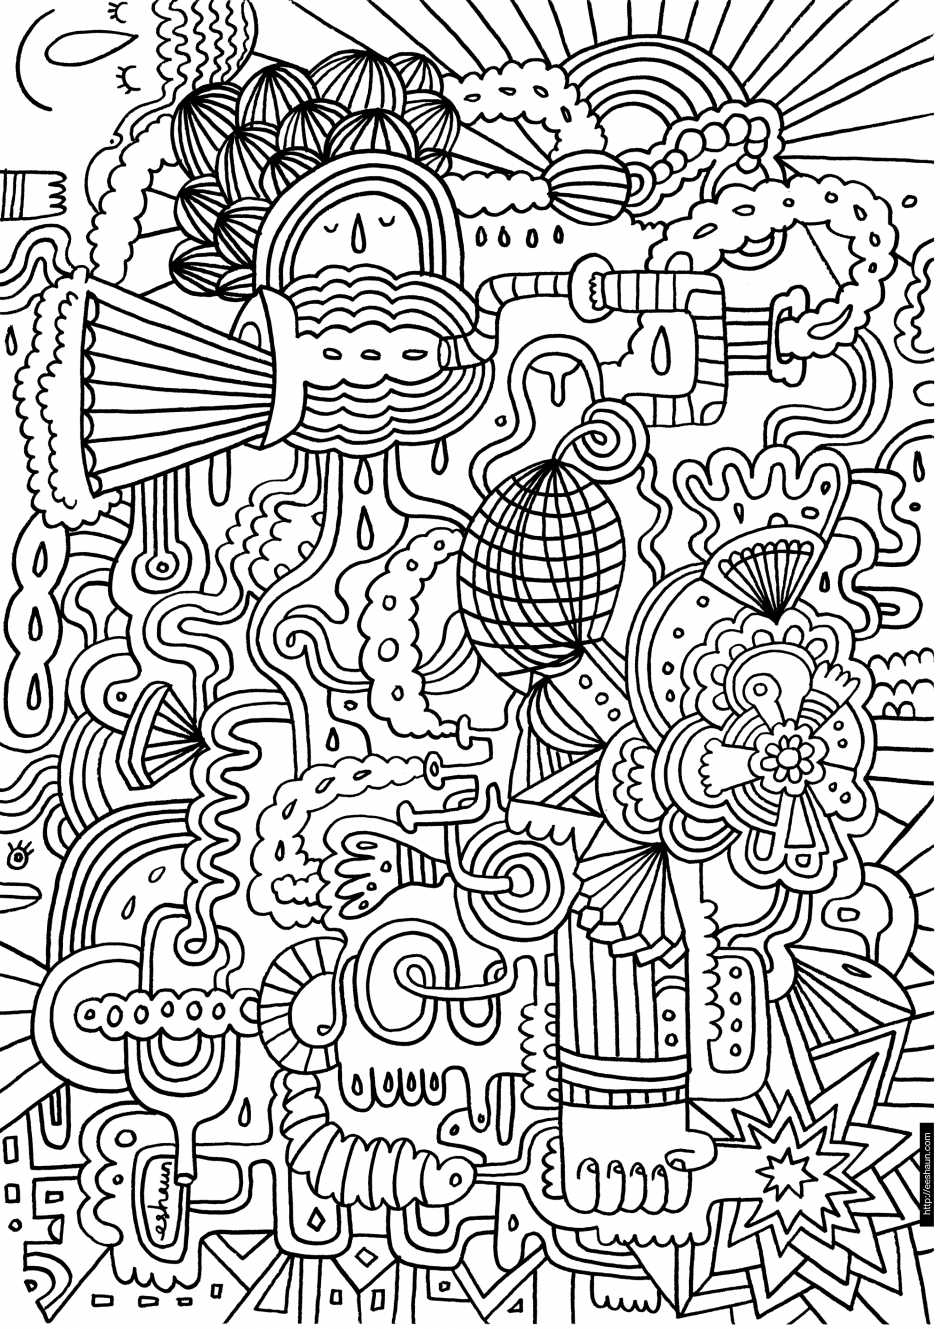 Coloring Pages: Difficult but Fun Coloring Pages Free and Printable